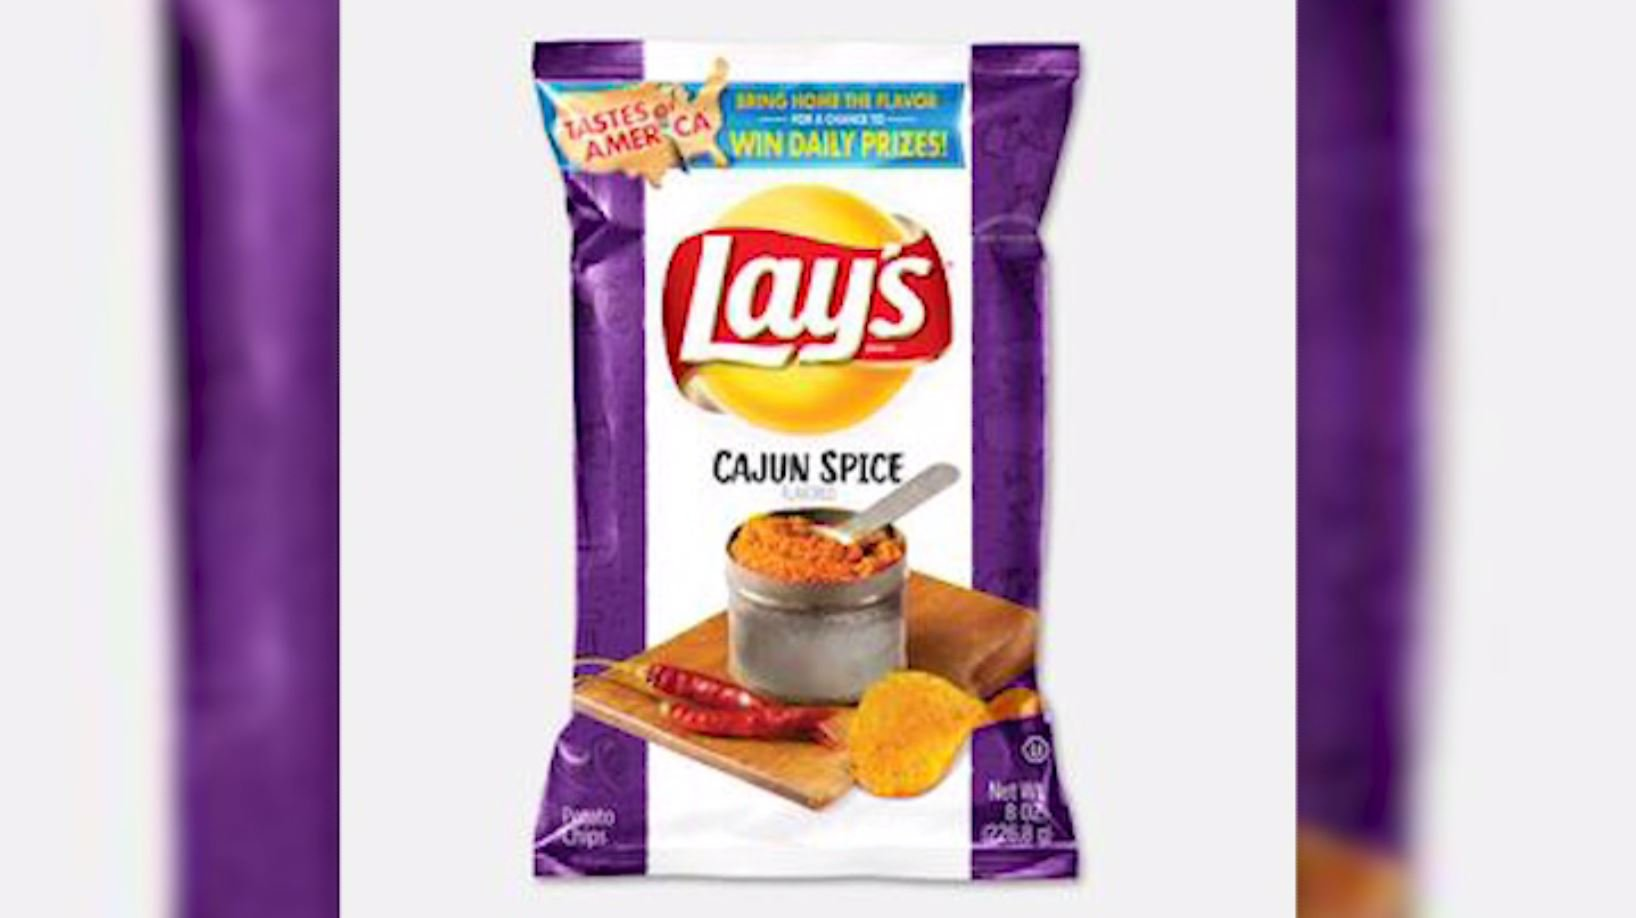 The flavors will be in grocery stores from July 30 through September 23. (Source: Lay's via CNN)